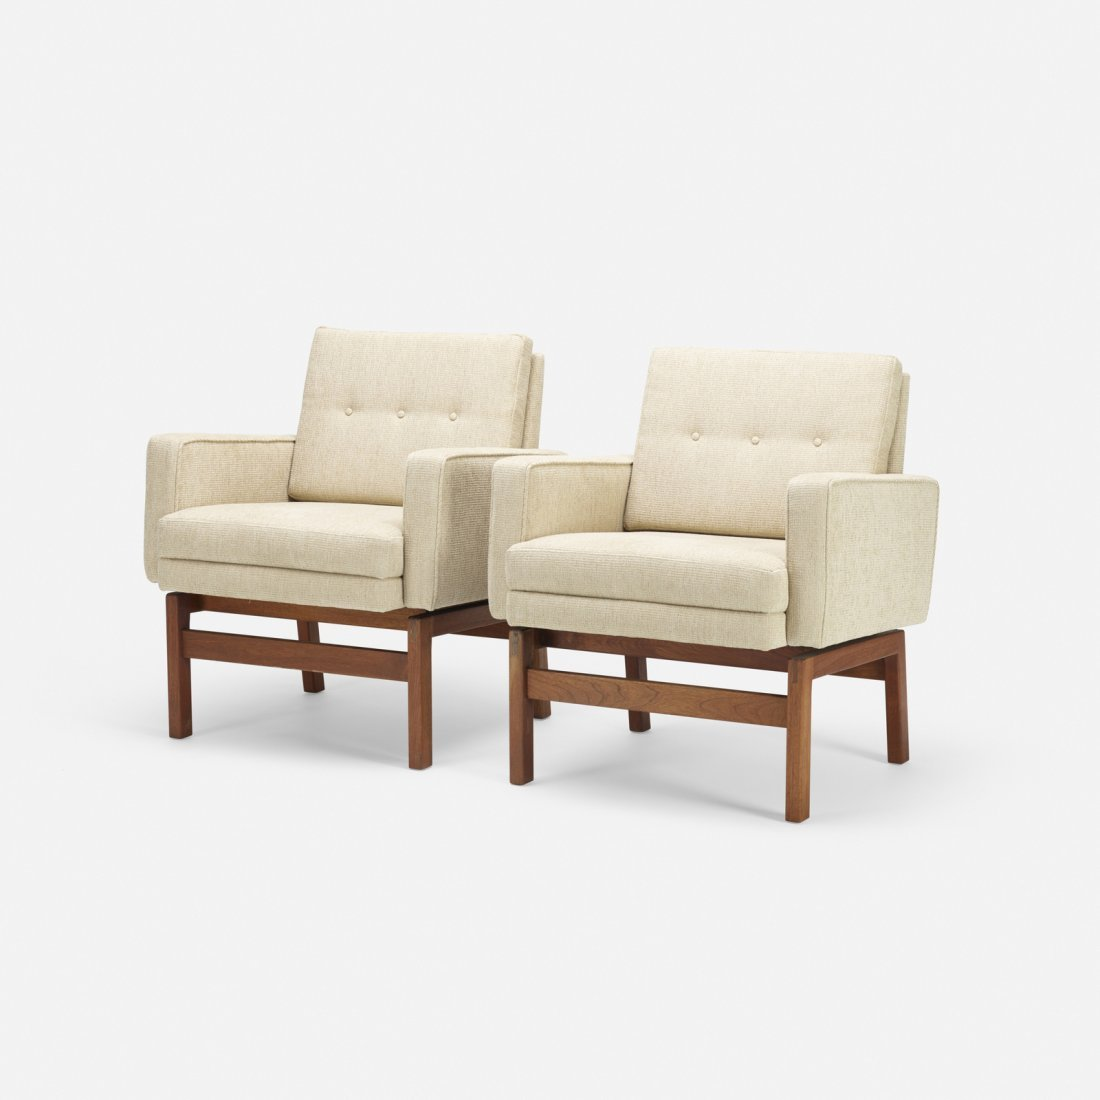 Jens Risom, lounge chairs, pair - 2